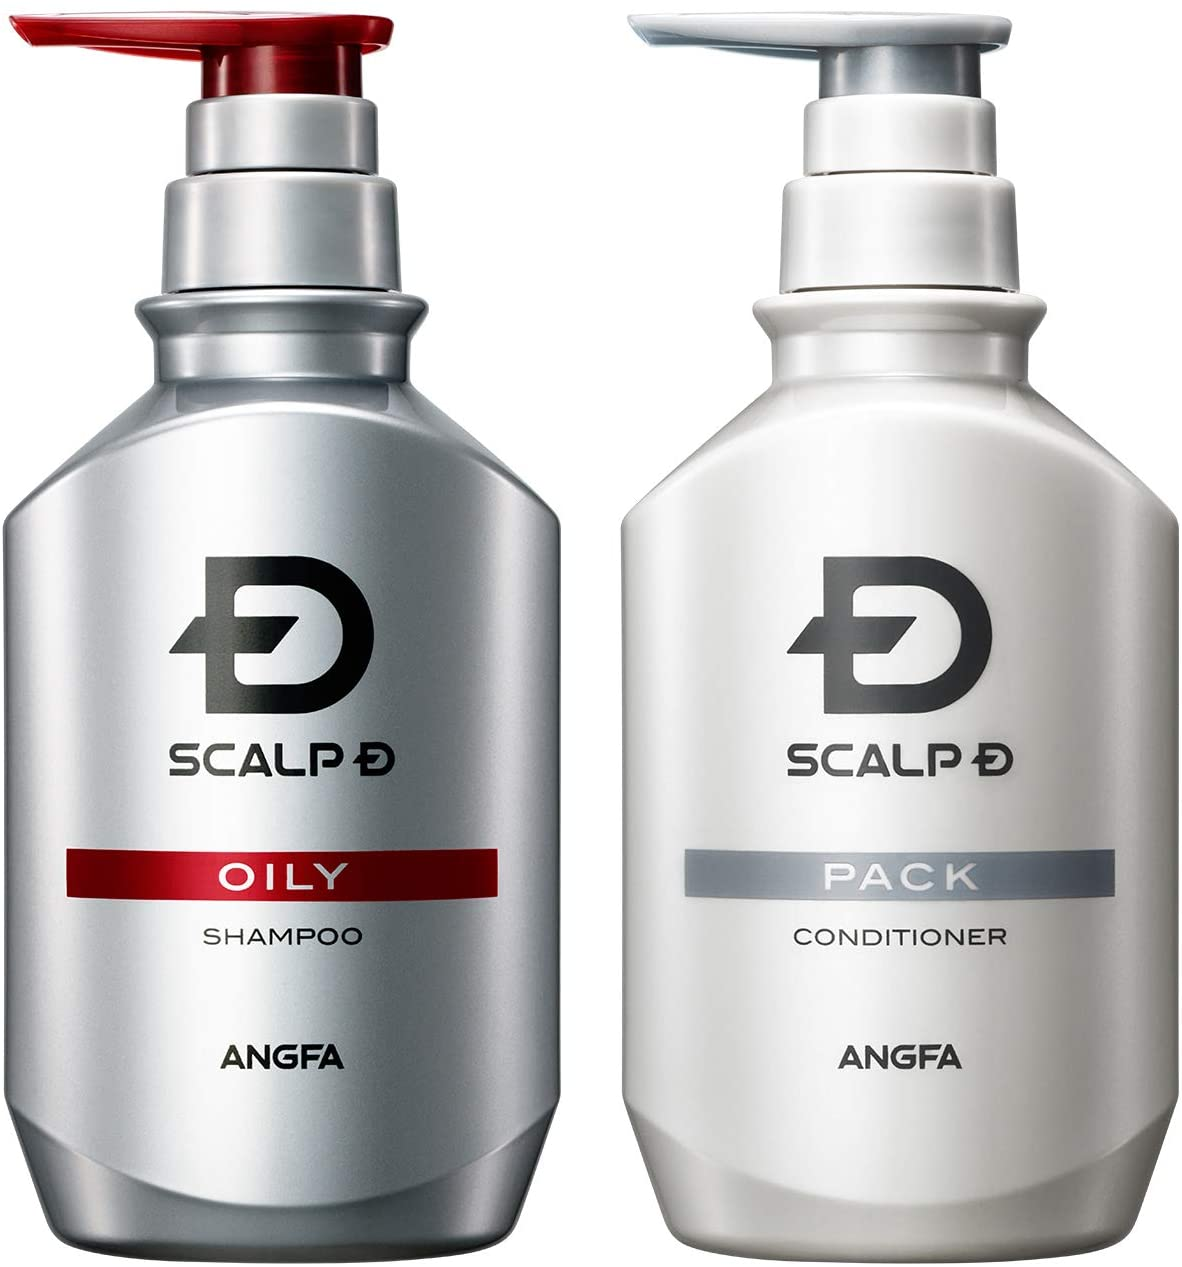 A bottle of Scalp-D oily variant anti-dandruff shampoo beside a bottle of Scalp-D conditioner – English language packaging